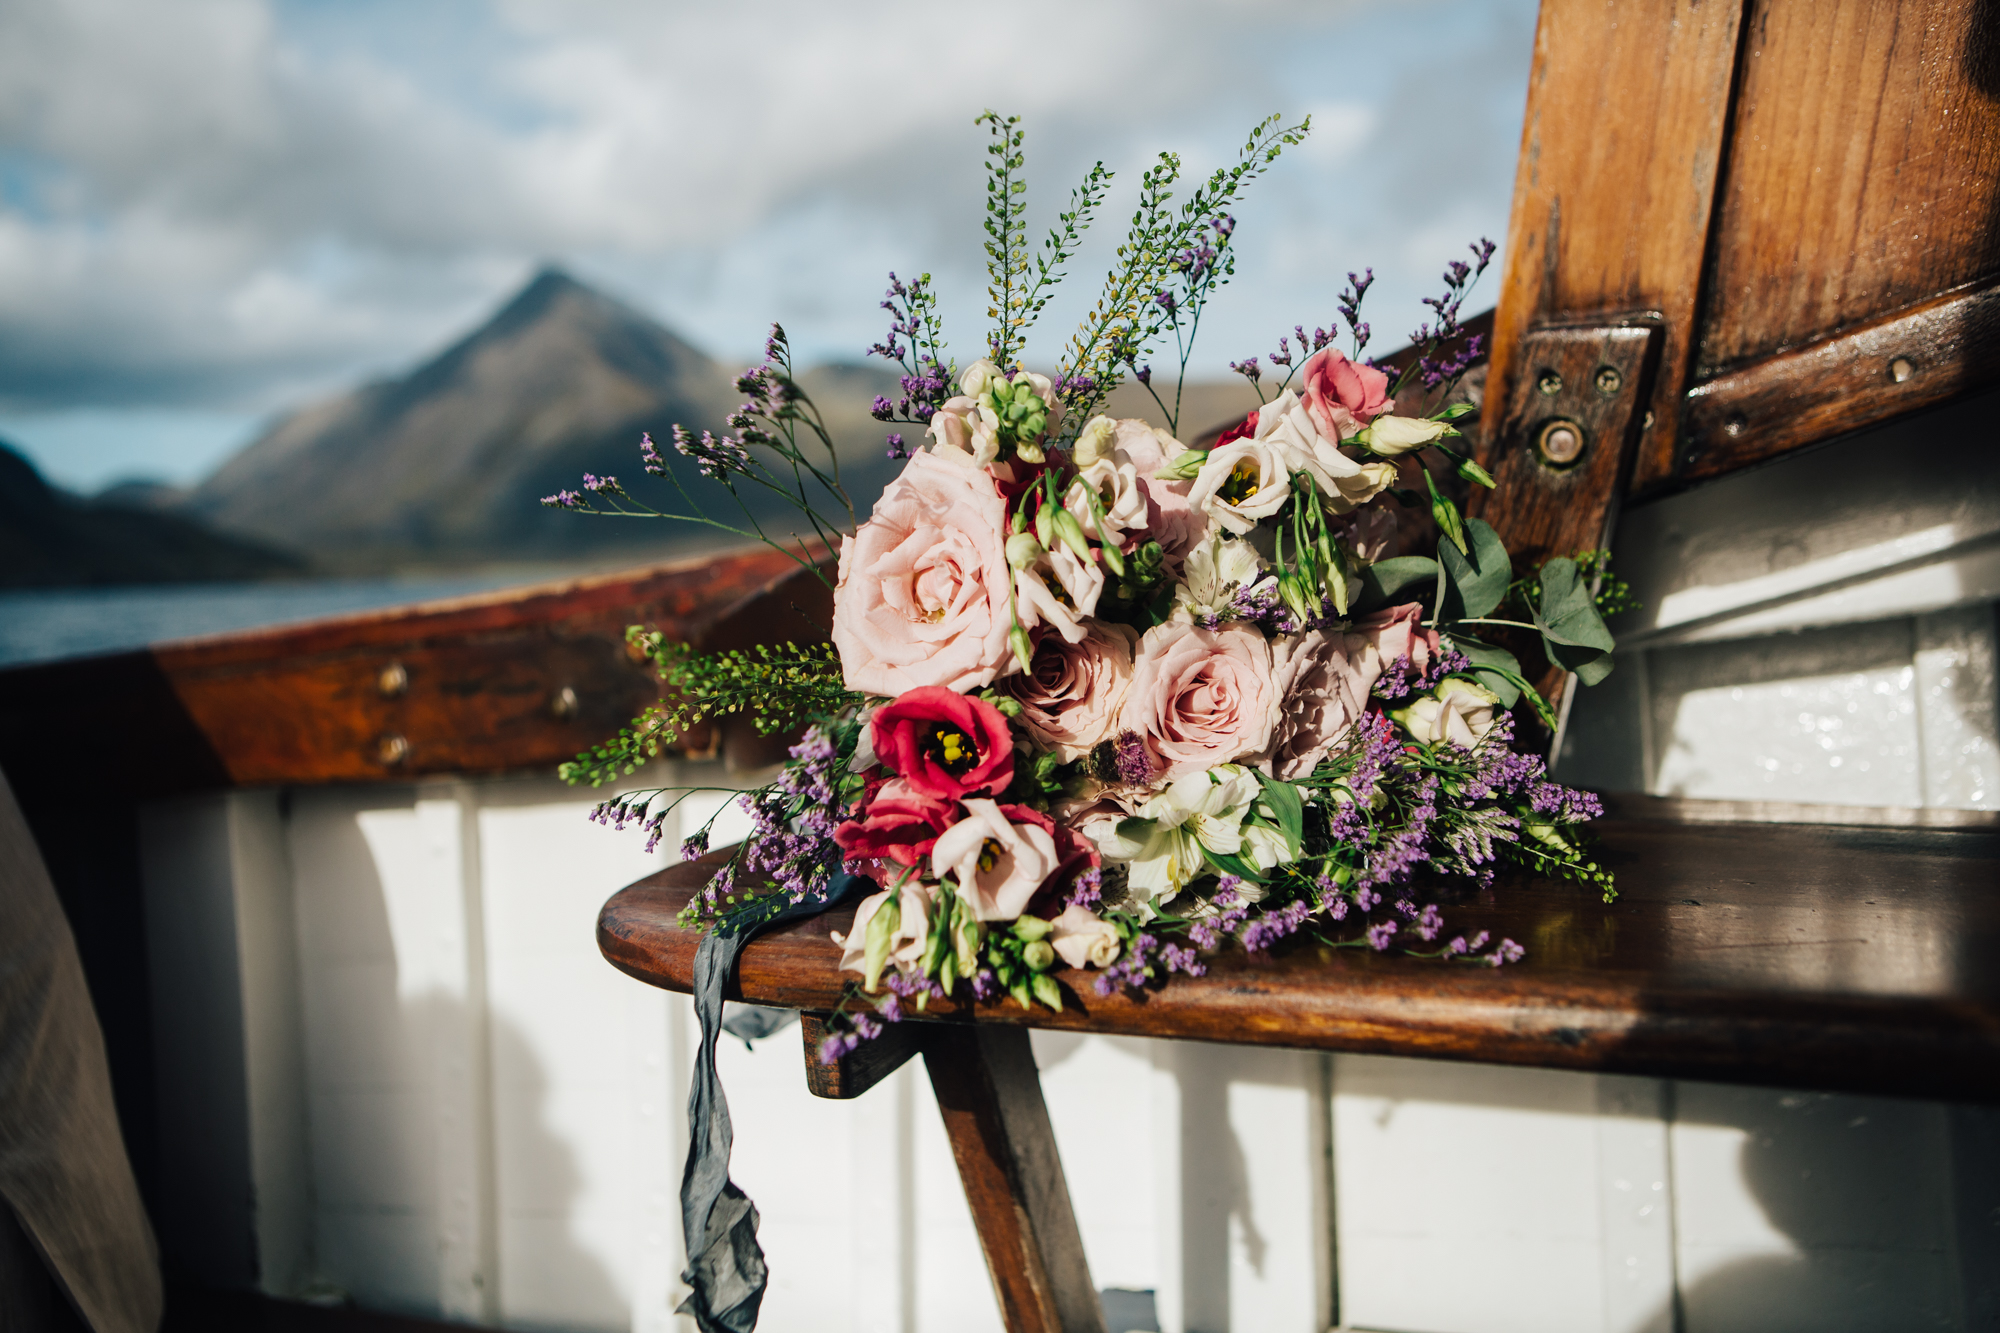 wedding bouquet of pink and wild flowers on wooden seating of Misty Isle boat